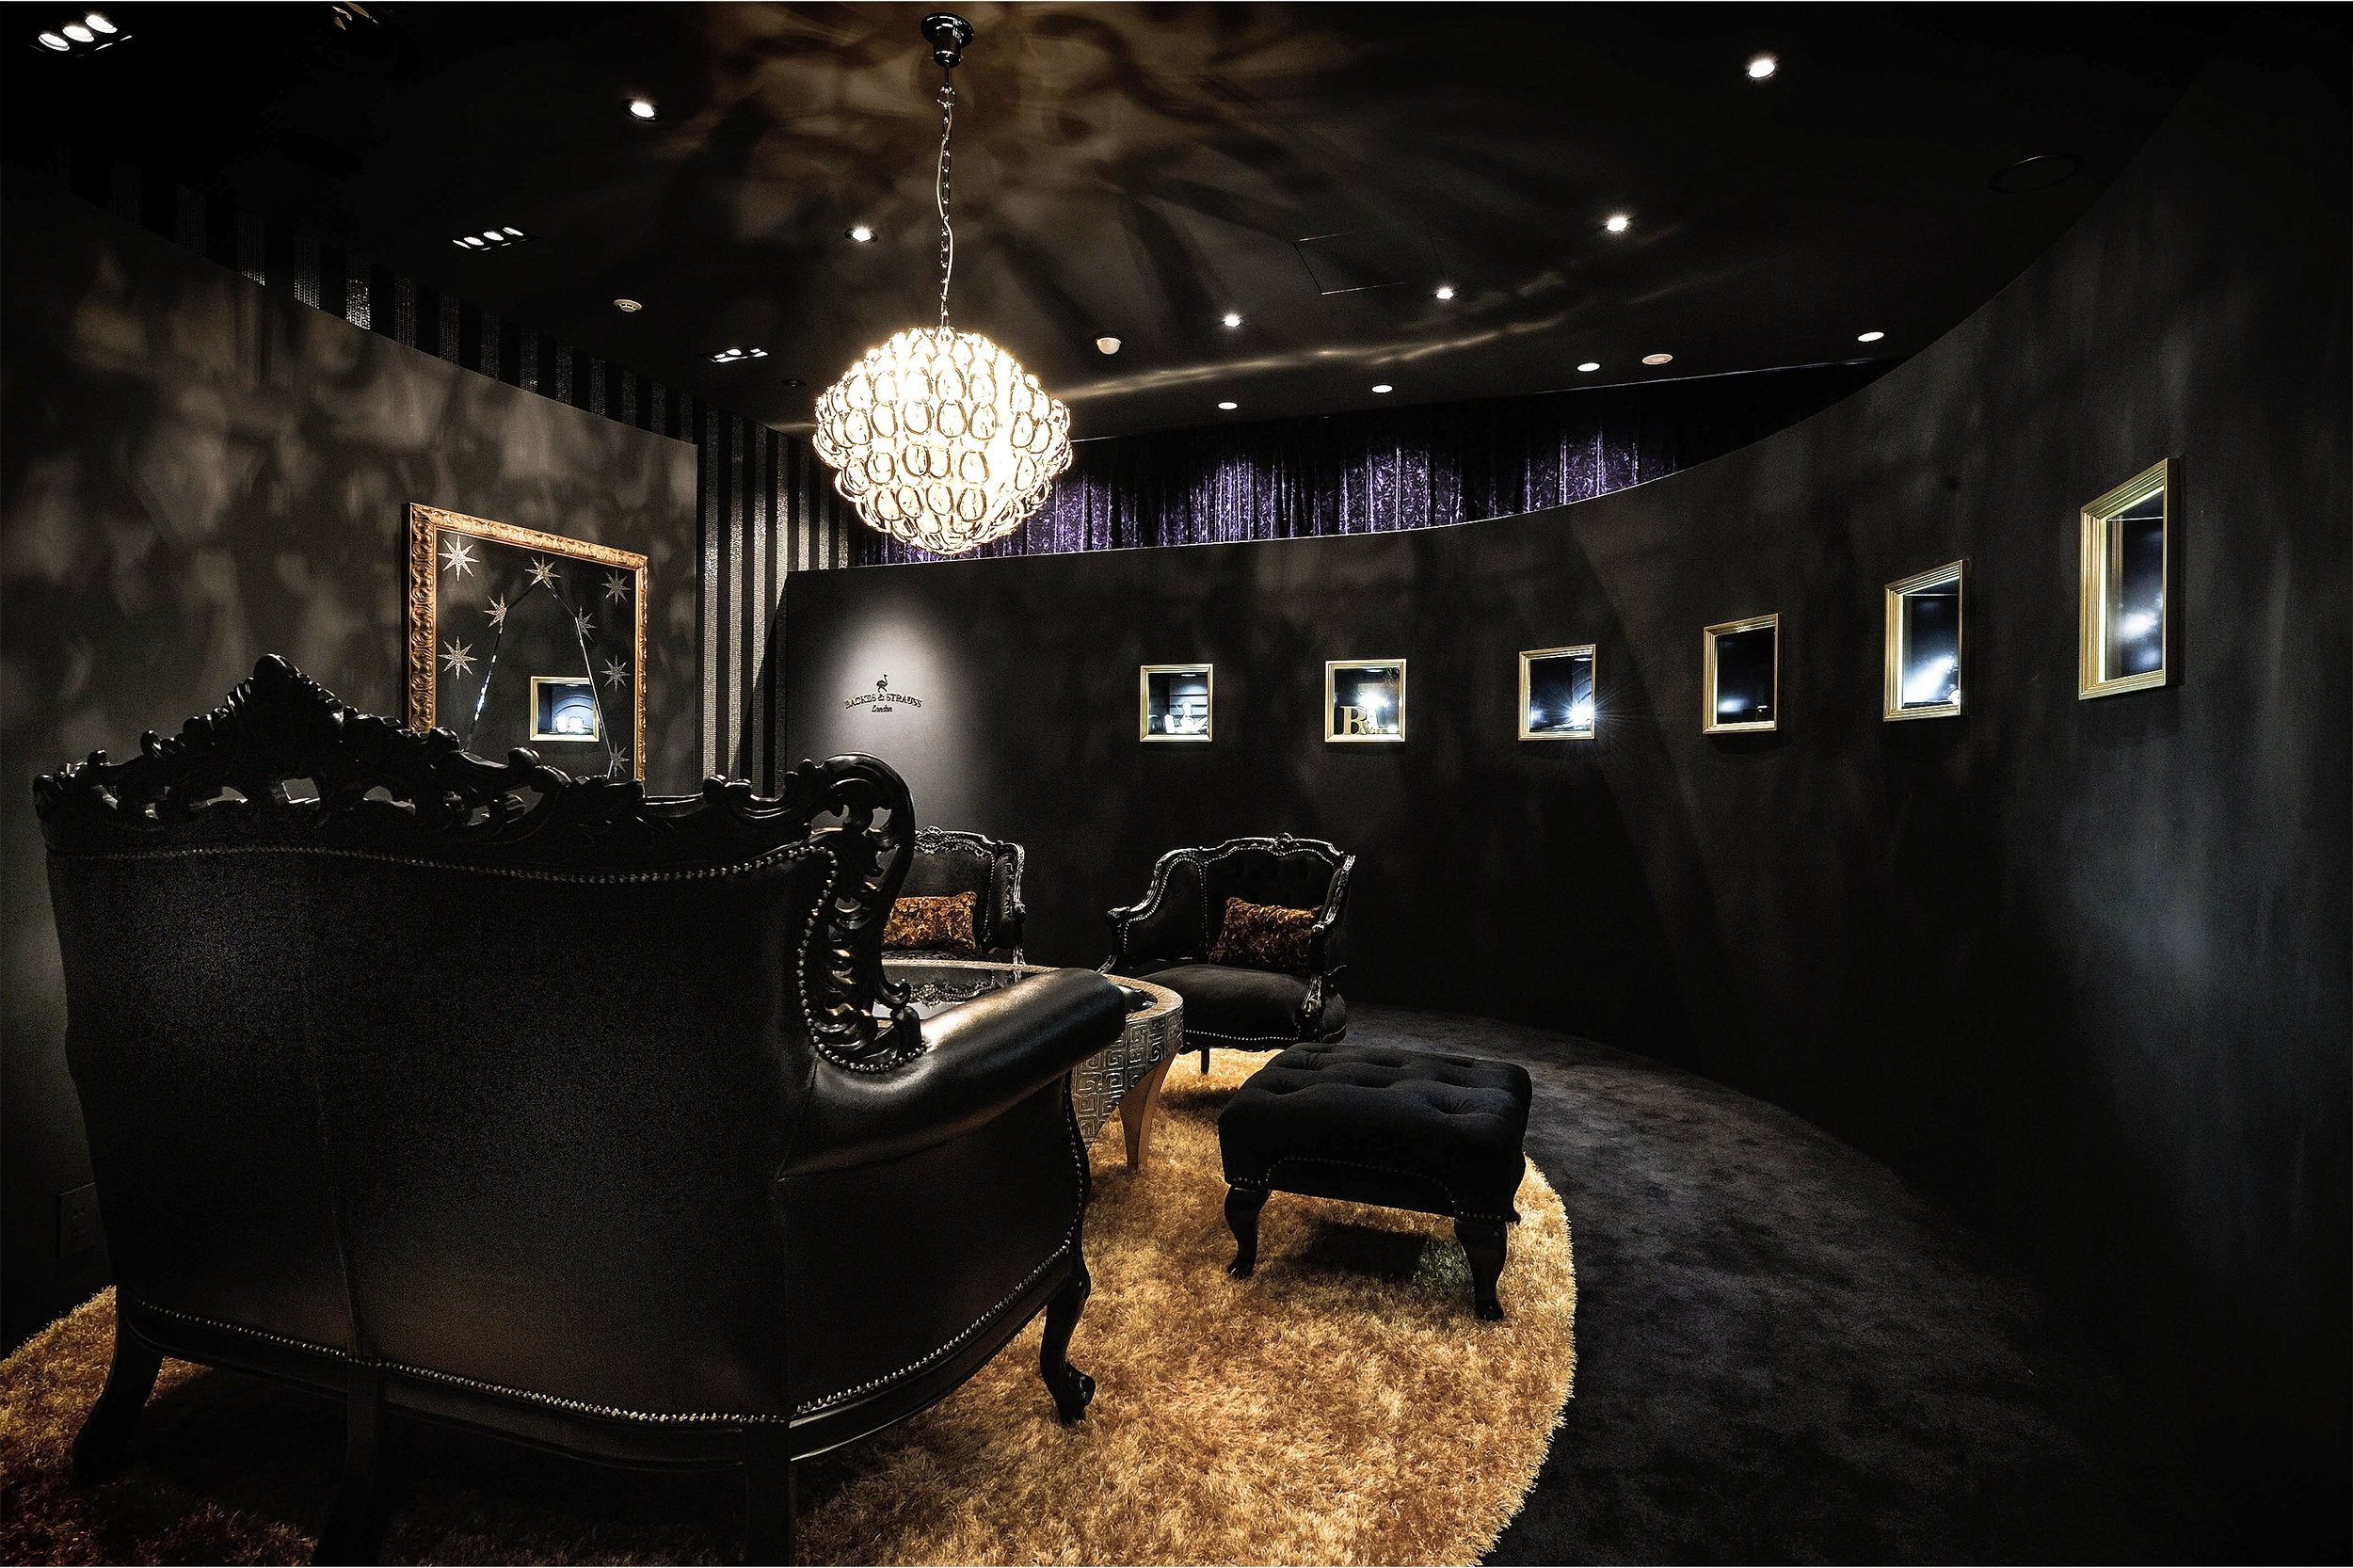 Backes & Strauss luxury brand watch boutique in Japan